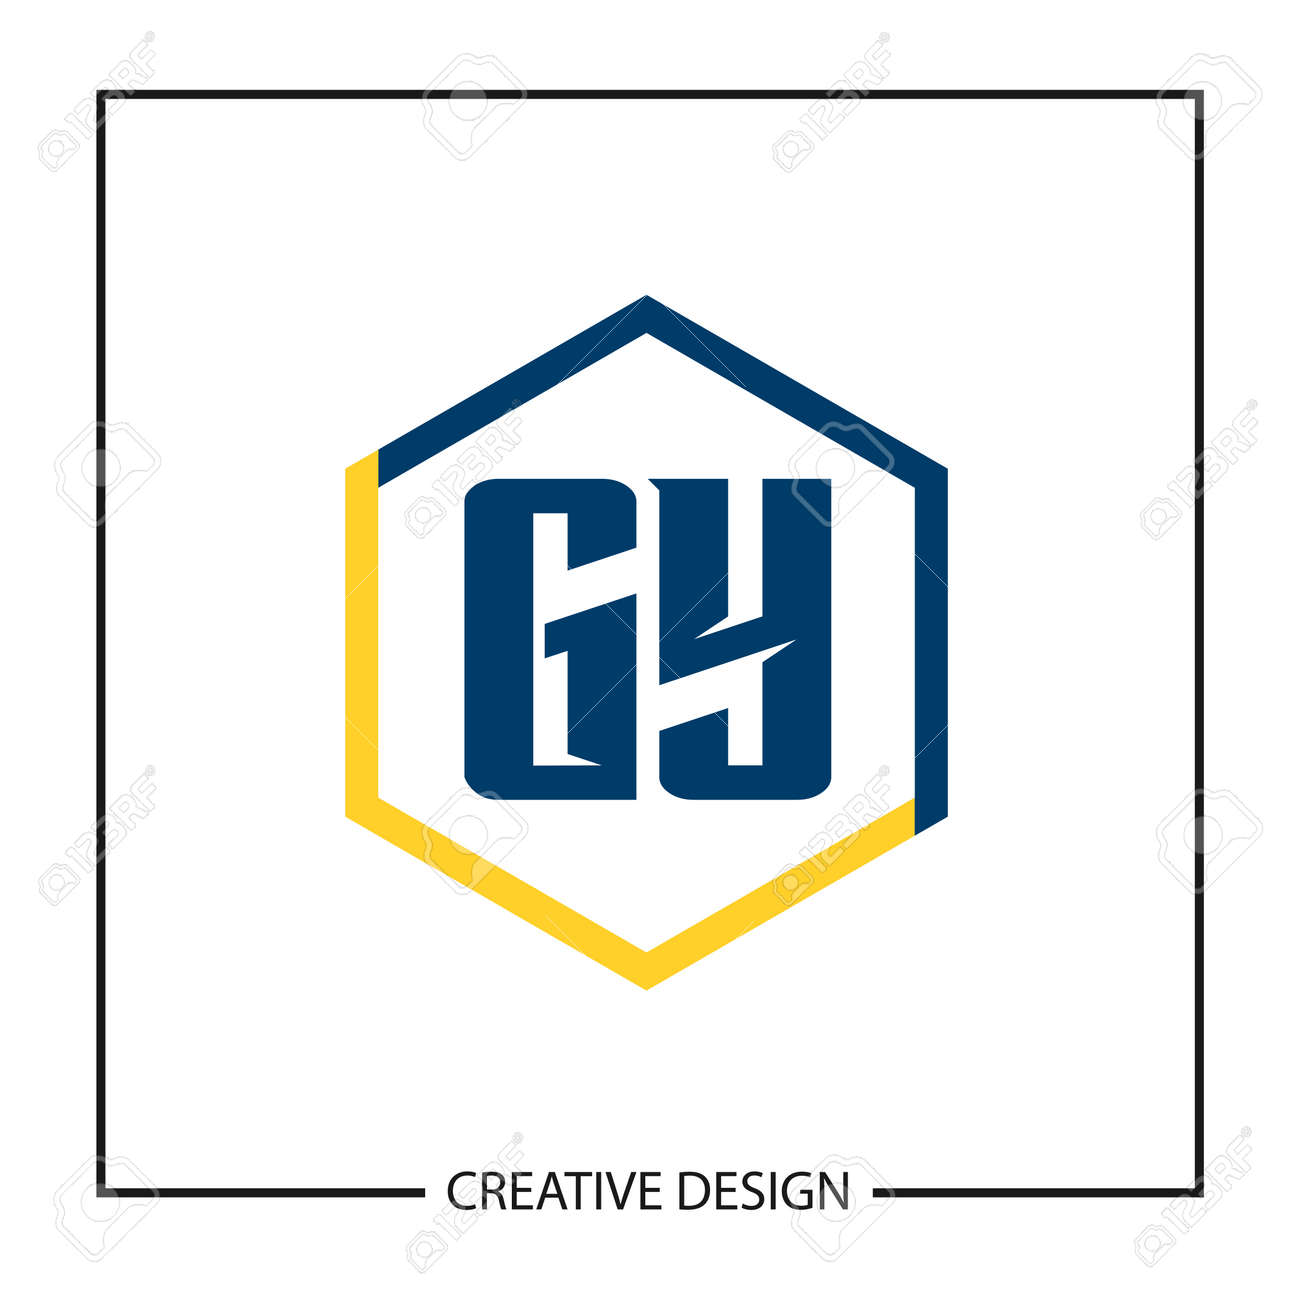 Initial Letter GY Template Design Vector Illustration - 118839479